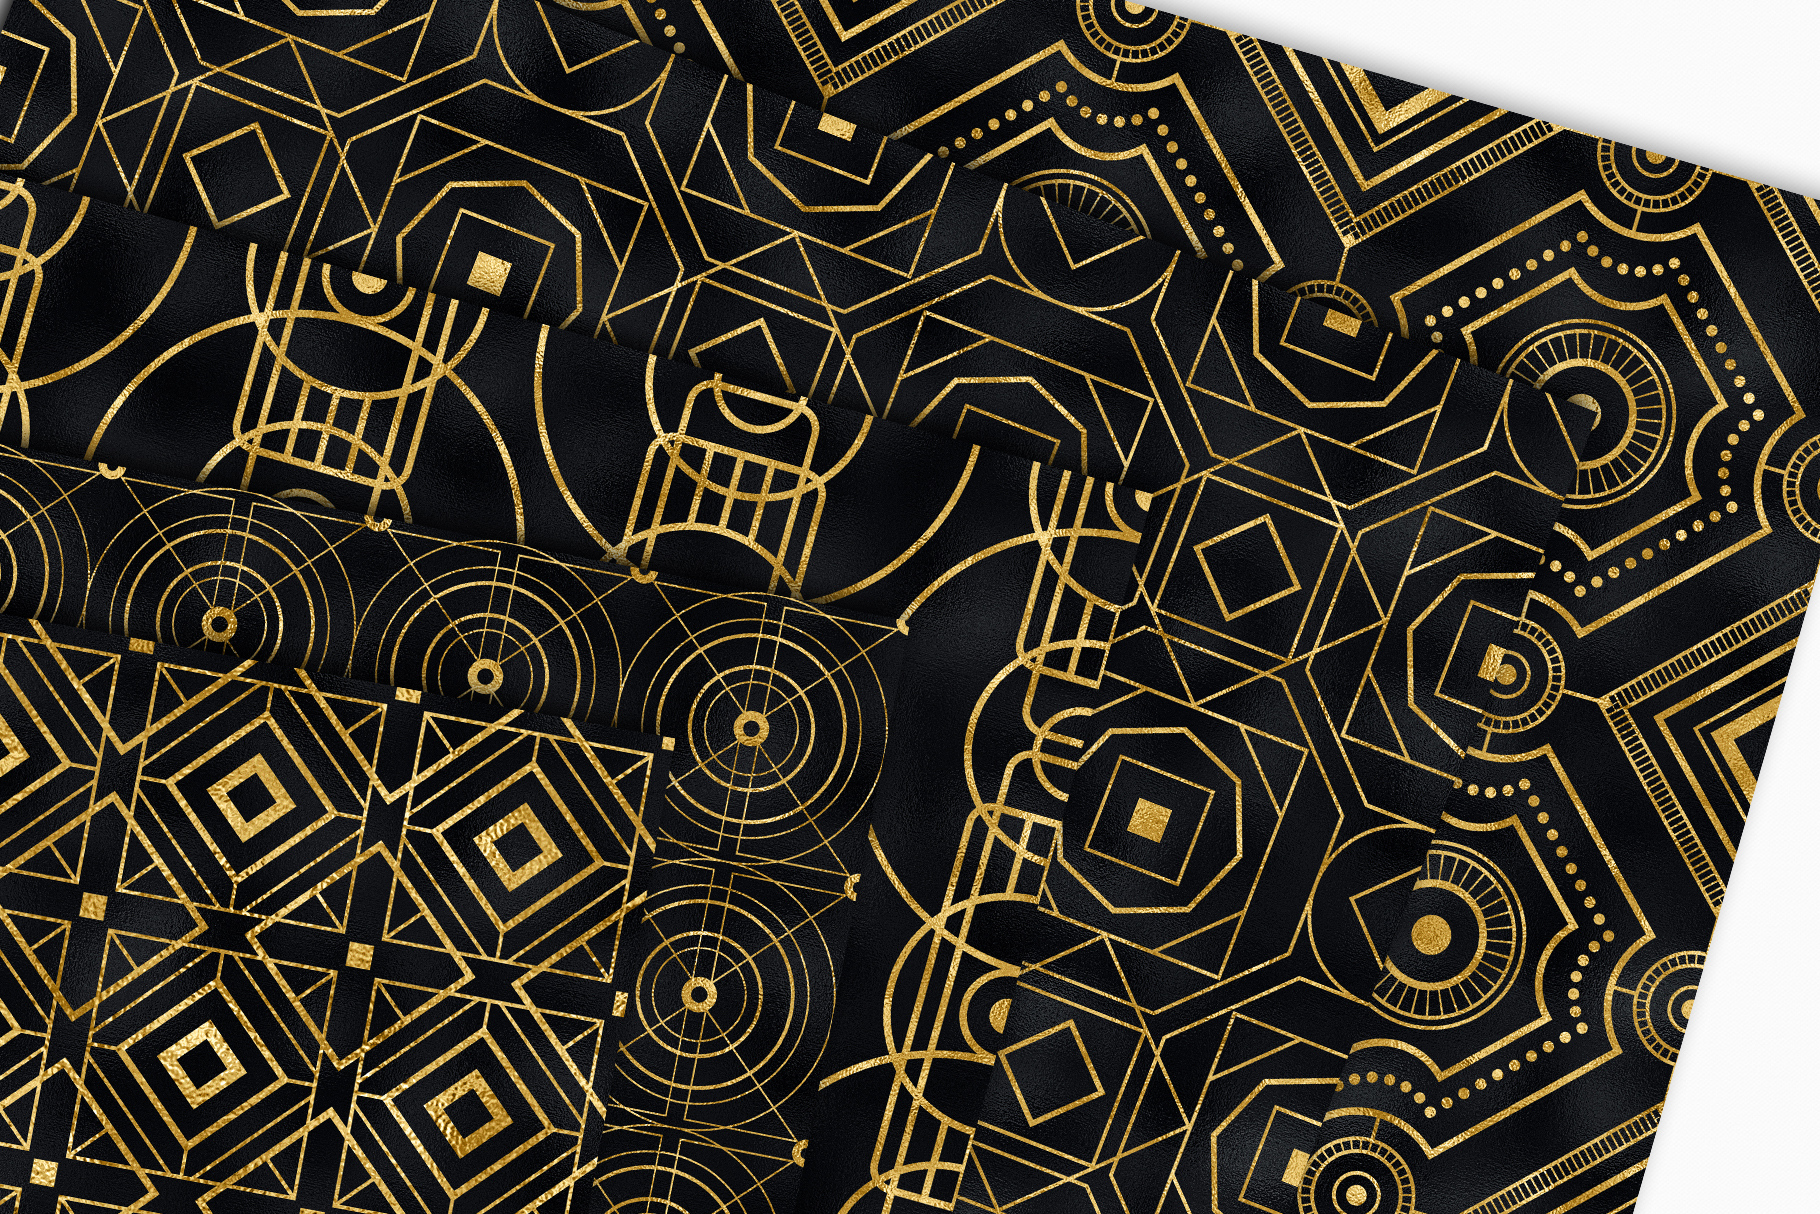 Geometric Art Deco Patterns - 20 Seamless Vector Patterns example image 10